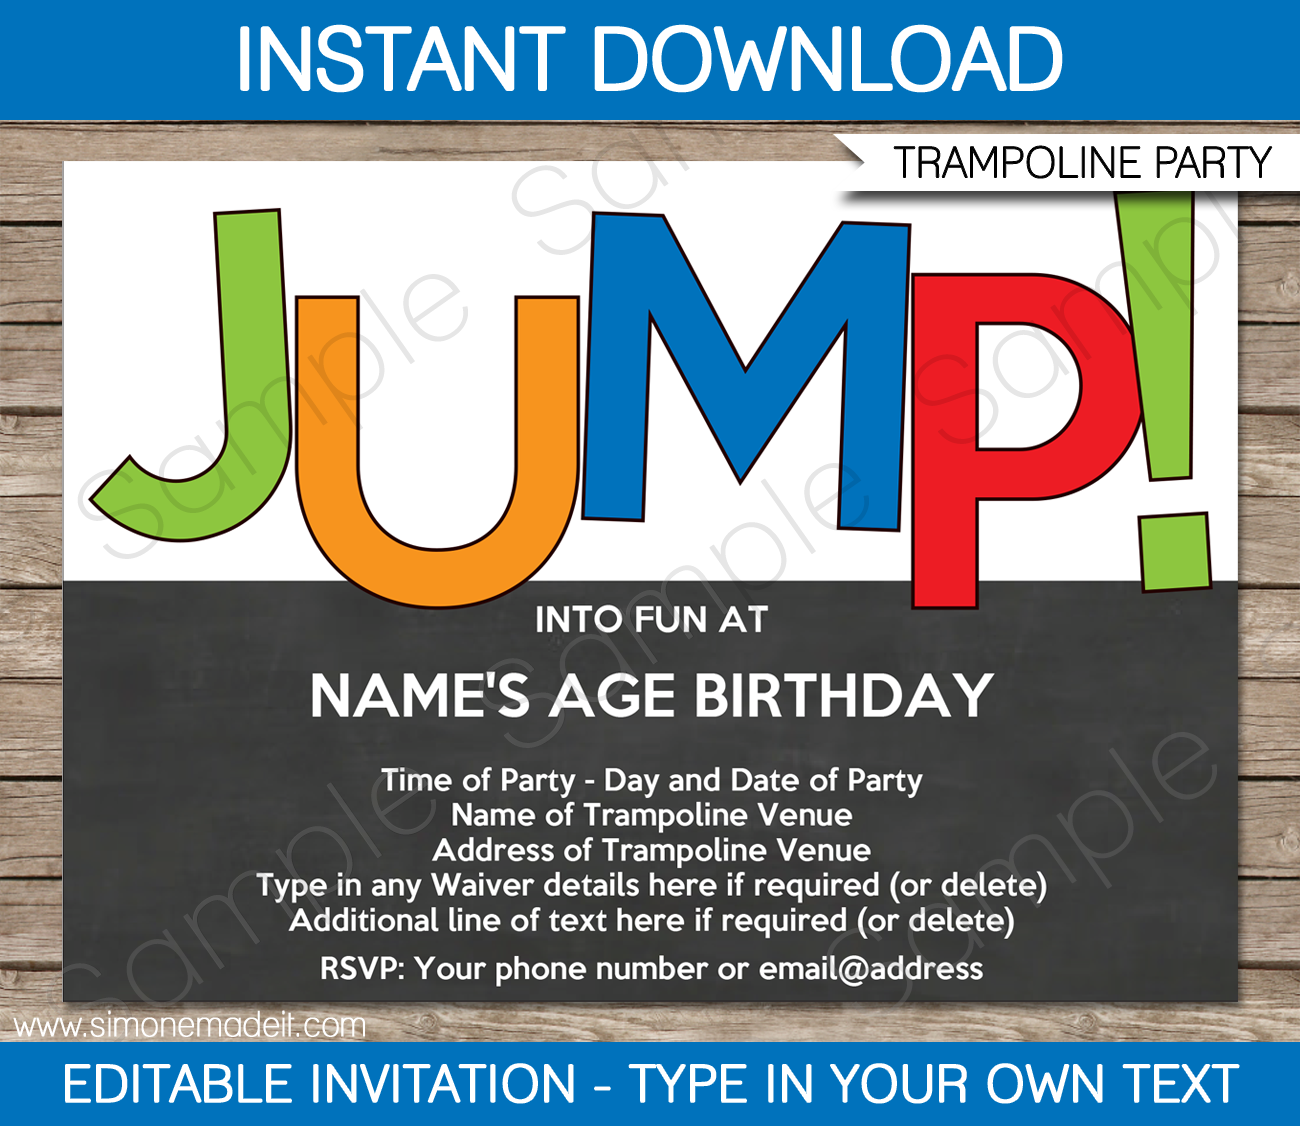 Trampoline Party Invitations: Trampoline Party Invitations